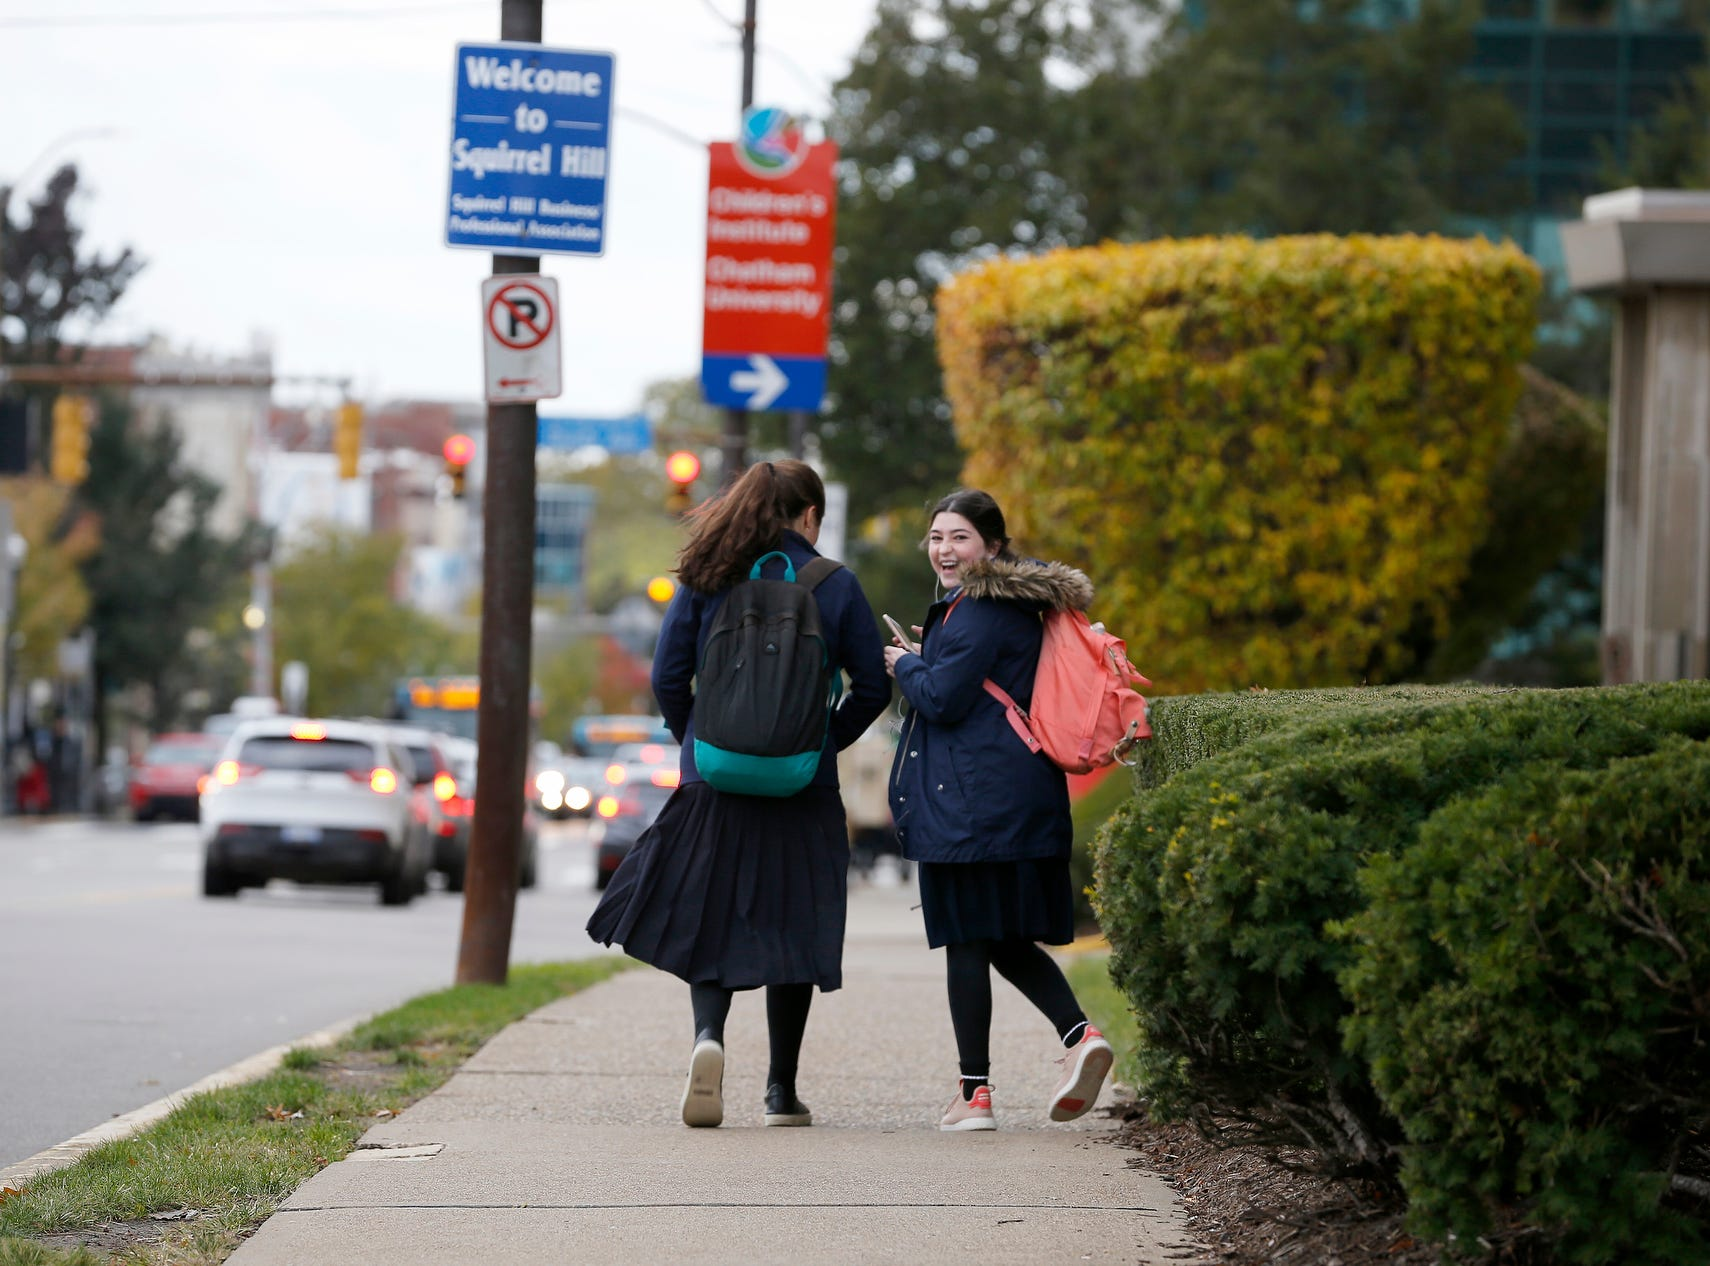 Students of Yeshiva Girls High School walk along Forbes Avenue in the Squirrel Hill neighborhood of Pittsburgh, Pa., near Tree of Life Congregation Synagogue.